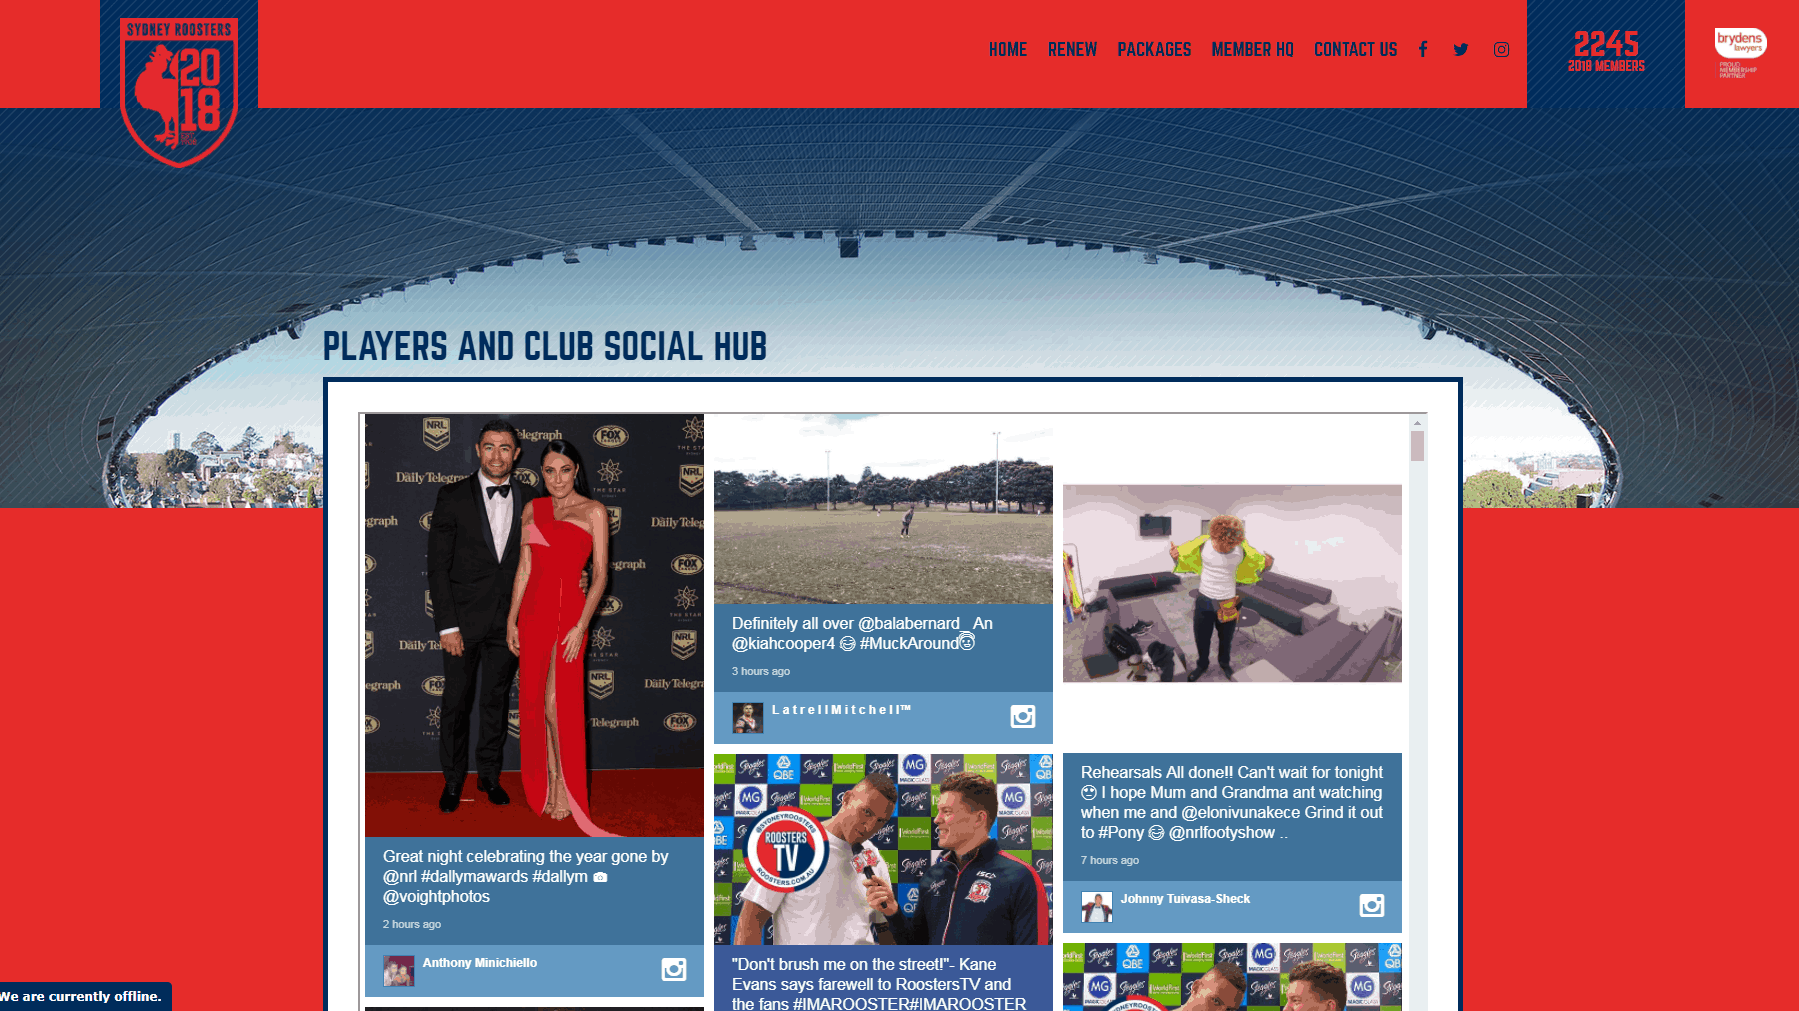 Advertise Me - Social Wall Sydney Roosters Client Header Membership Site